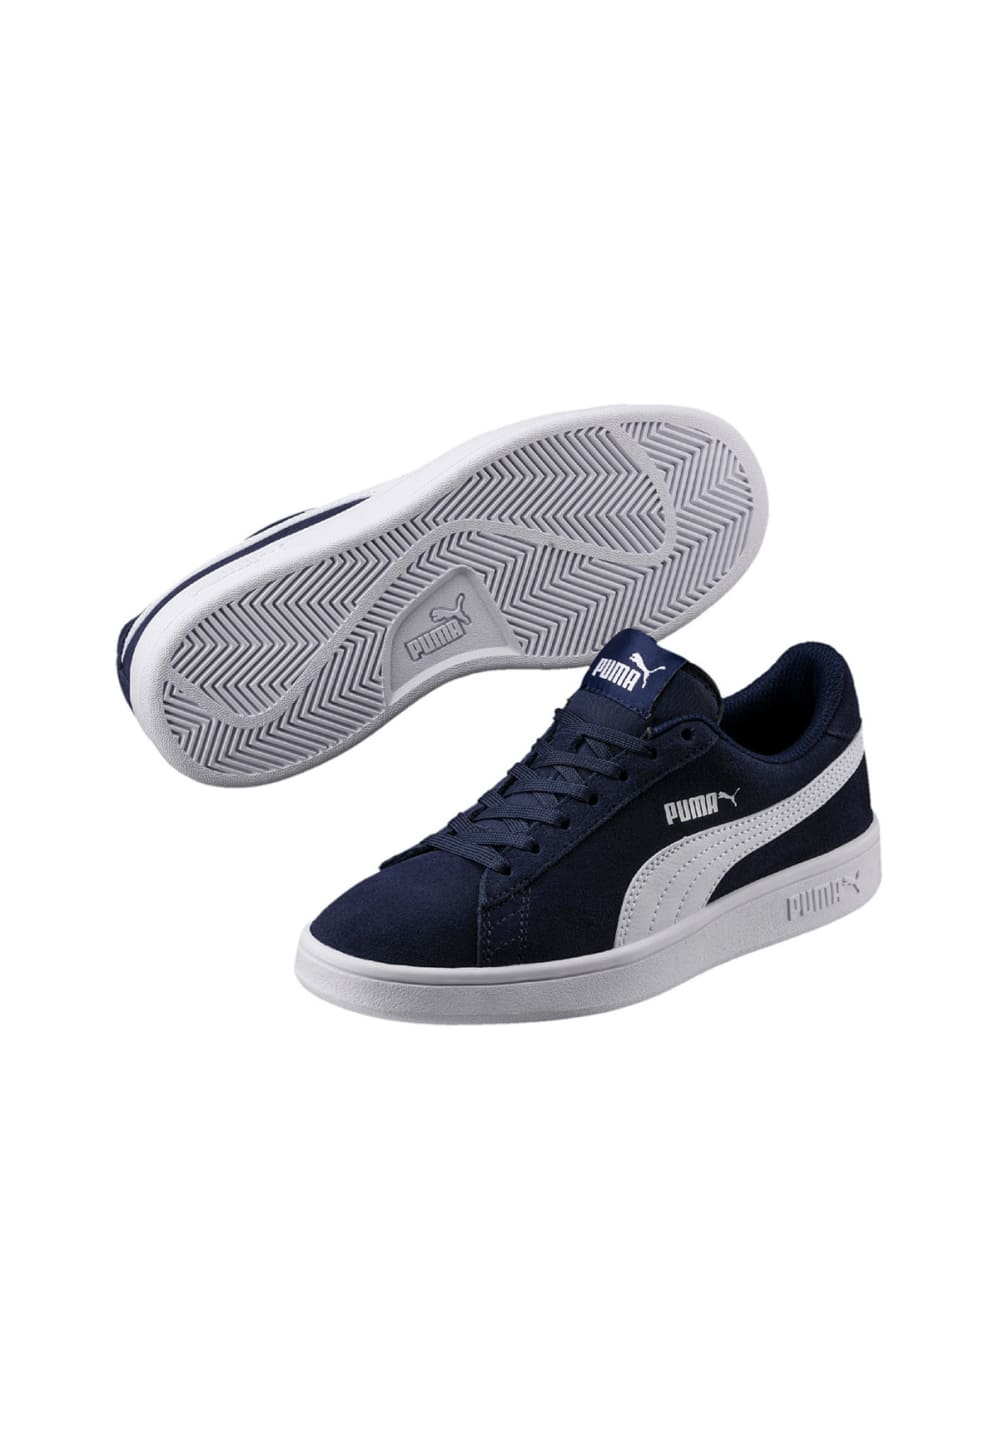 2555bd56467 ... Puma Smash v2 SD Jr - Sneaker - Blue. Back to Overview. This product is  currently out of stock.